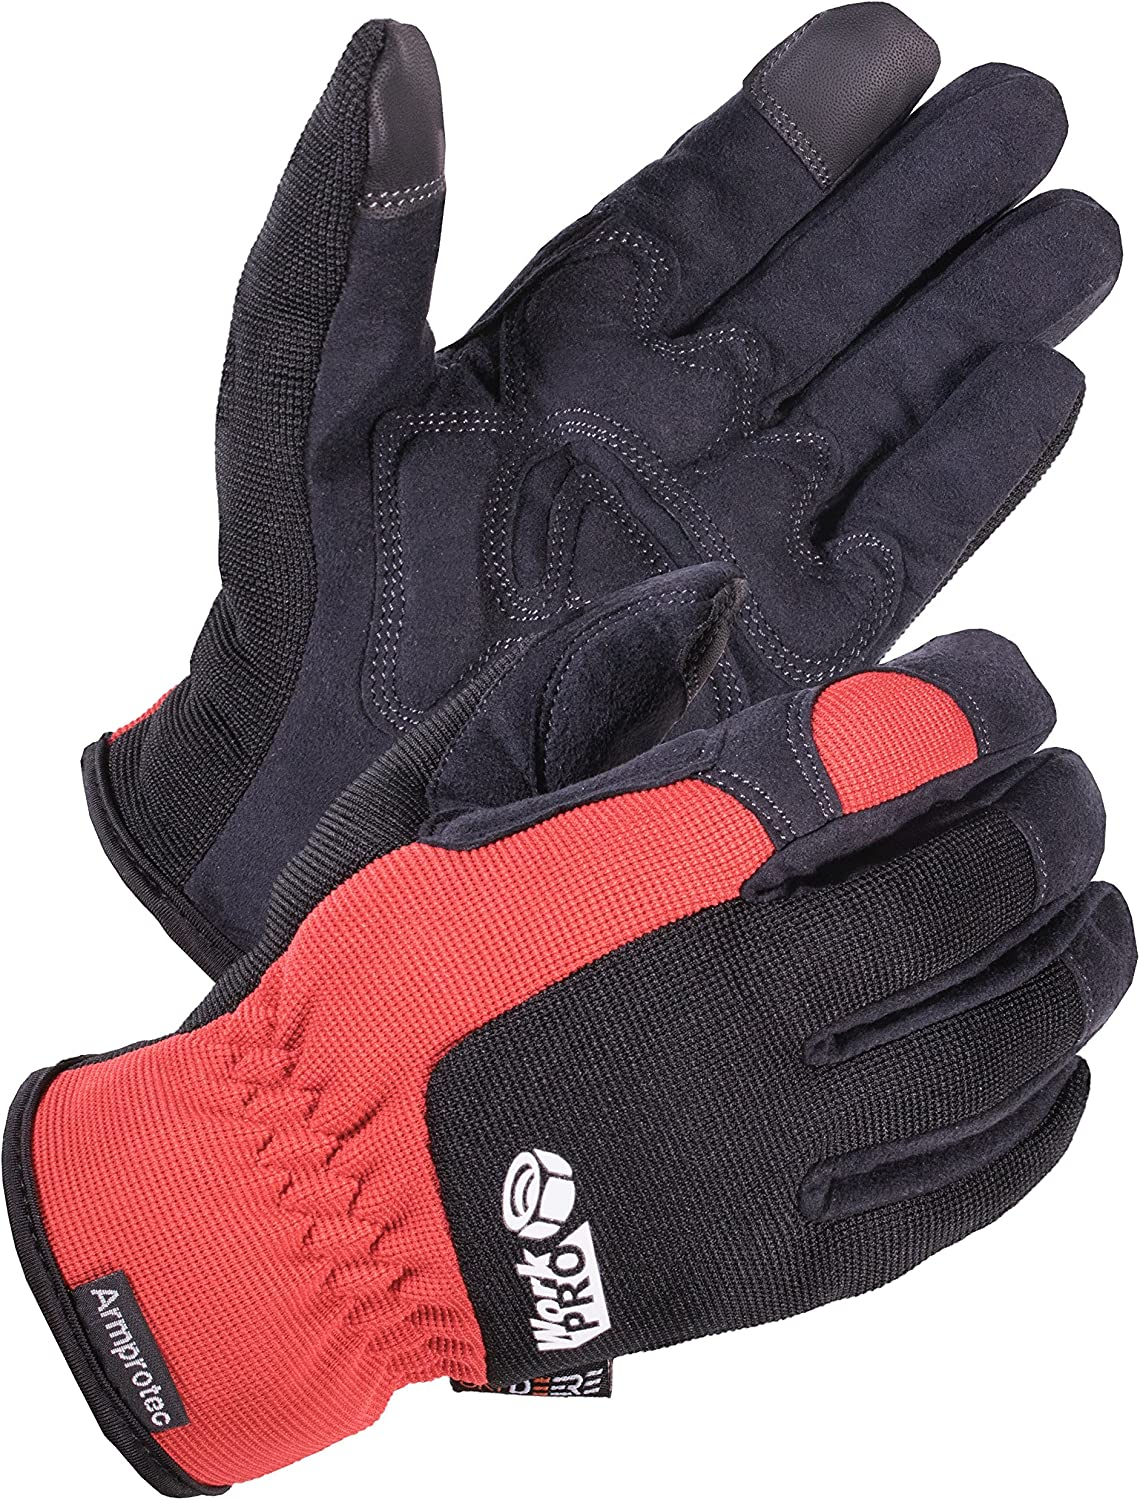 SKYDEER 5% OFF Mens Water Resistant Touchscreen Gloves Max 87% OFF with Hi-Per Work